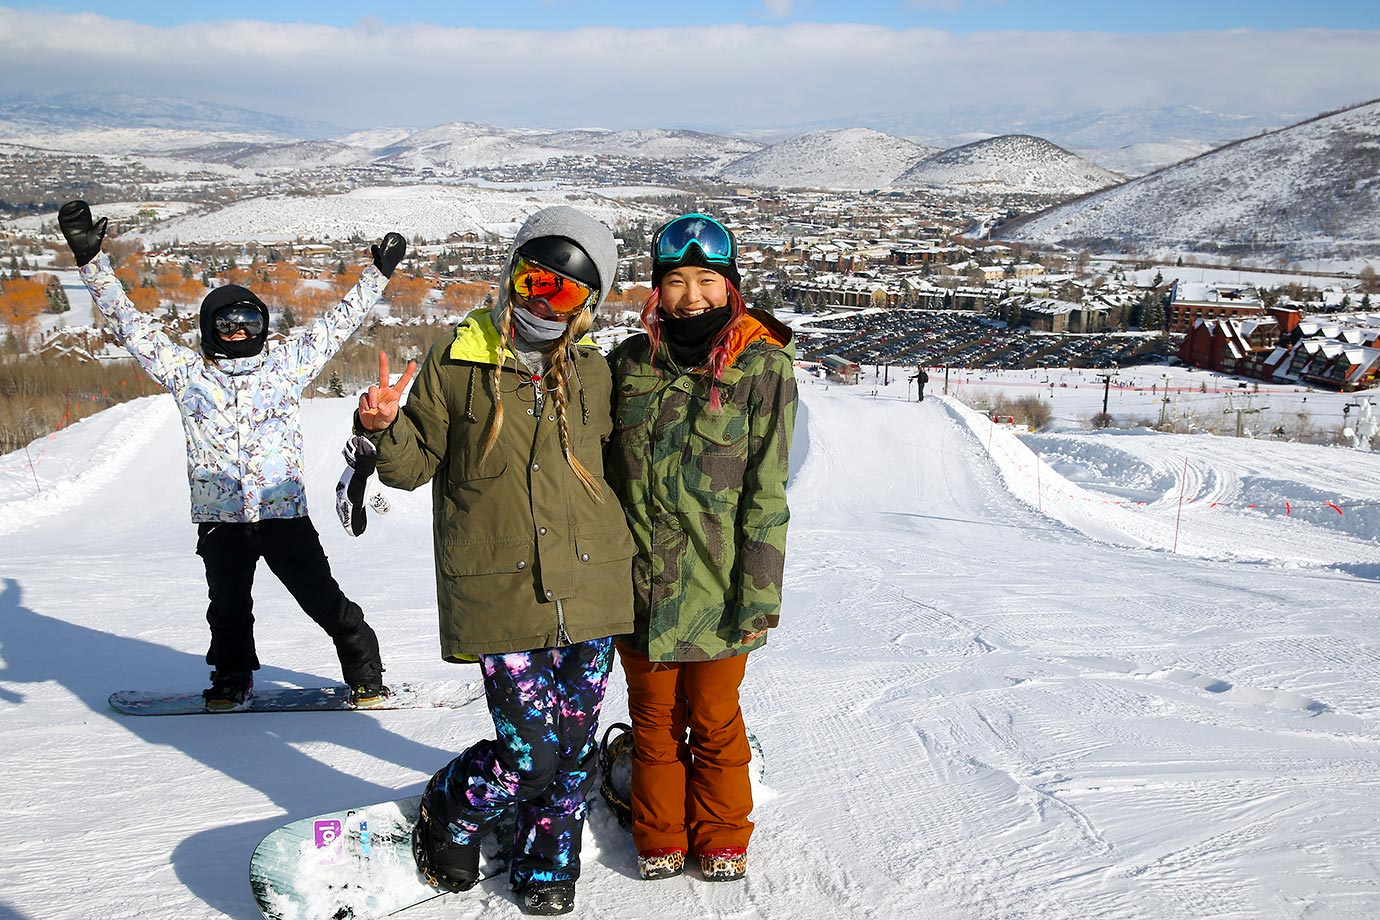 Snowboarder Chloe Kim, far right, poses for a photo with fellow snowboarder (and Olympic champion ) Hannah Teter (middle ) as three time Olympic medalist Kelly Clark (in background ) photo bombs the moment in between practice runs at Park City Resort in Park City.